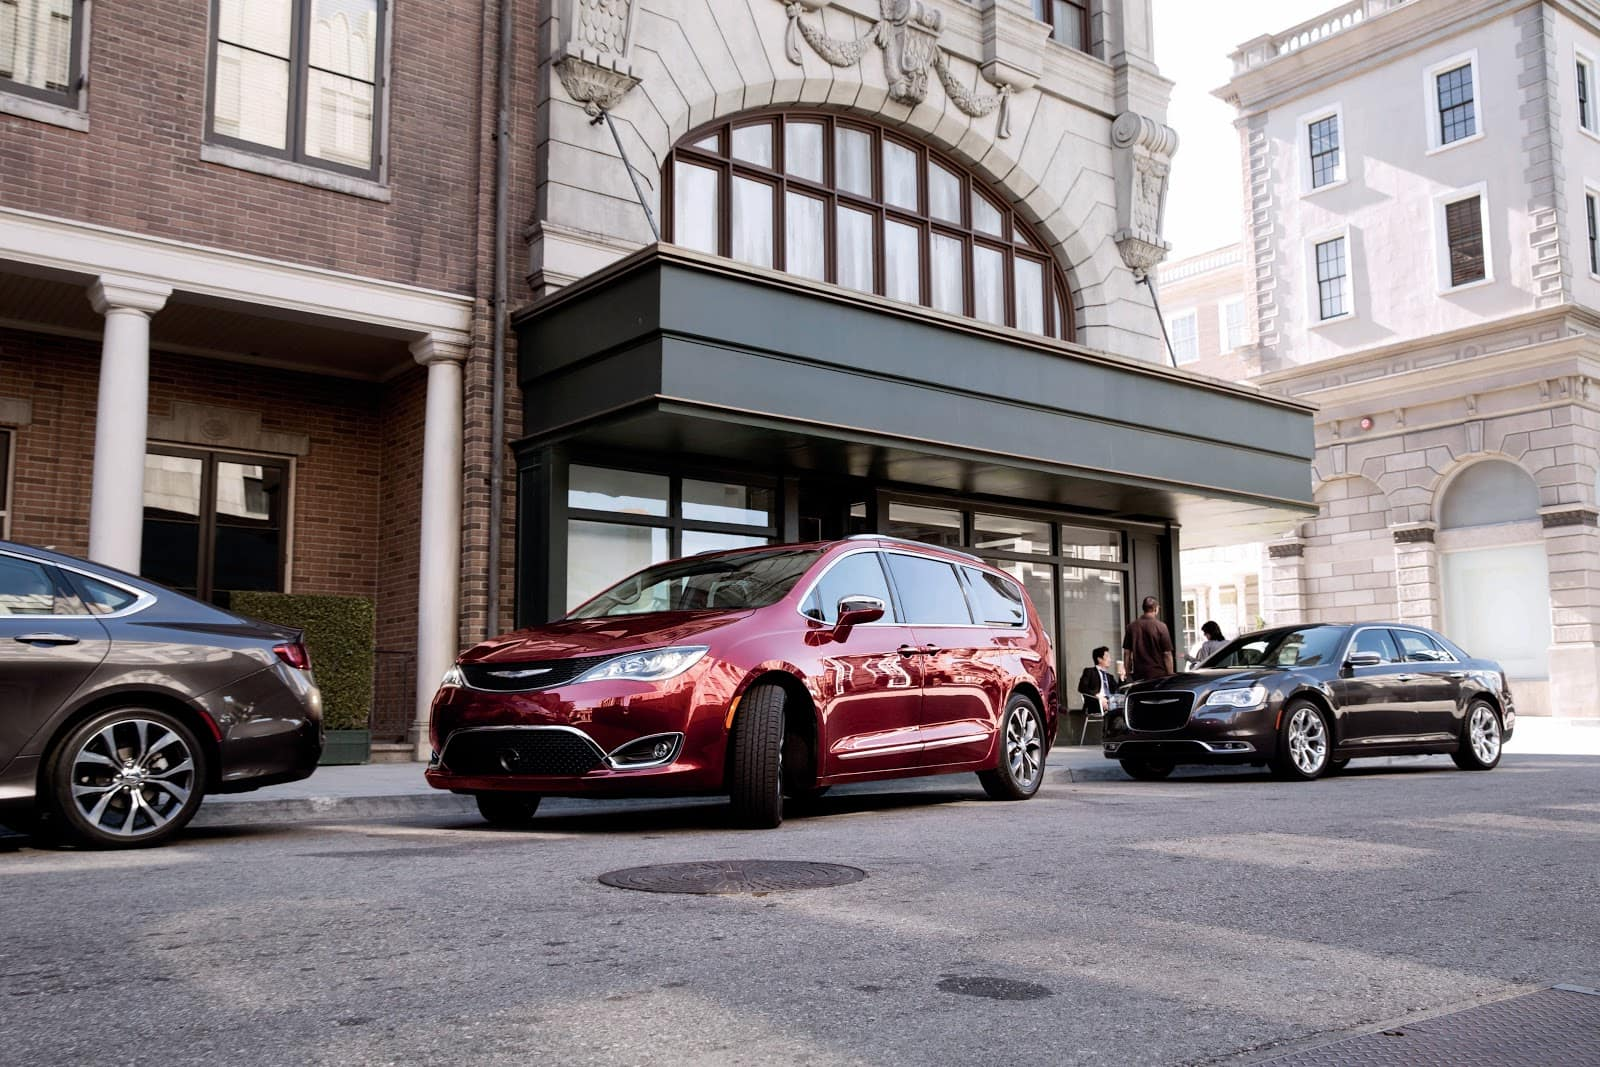 2019 Red Chrysler Pacifica Parallell Parked in front of Brick Building Among Other Cars